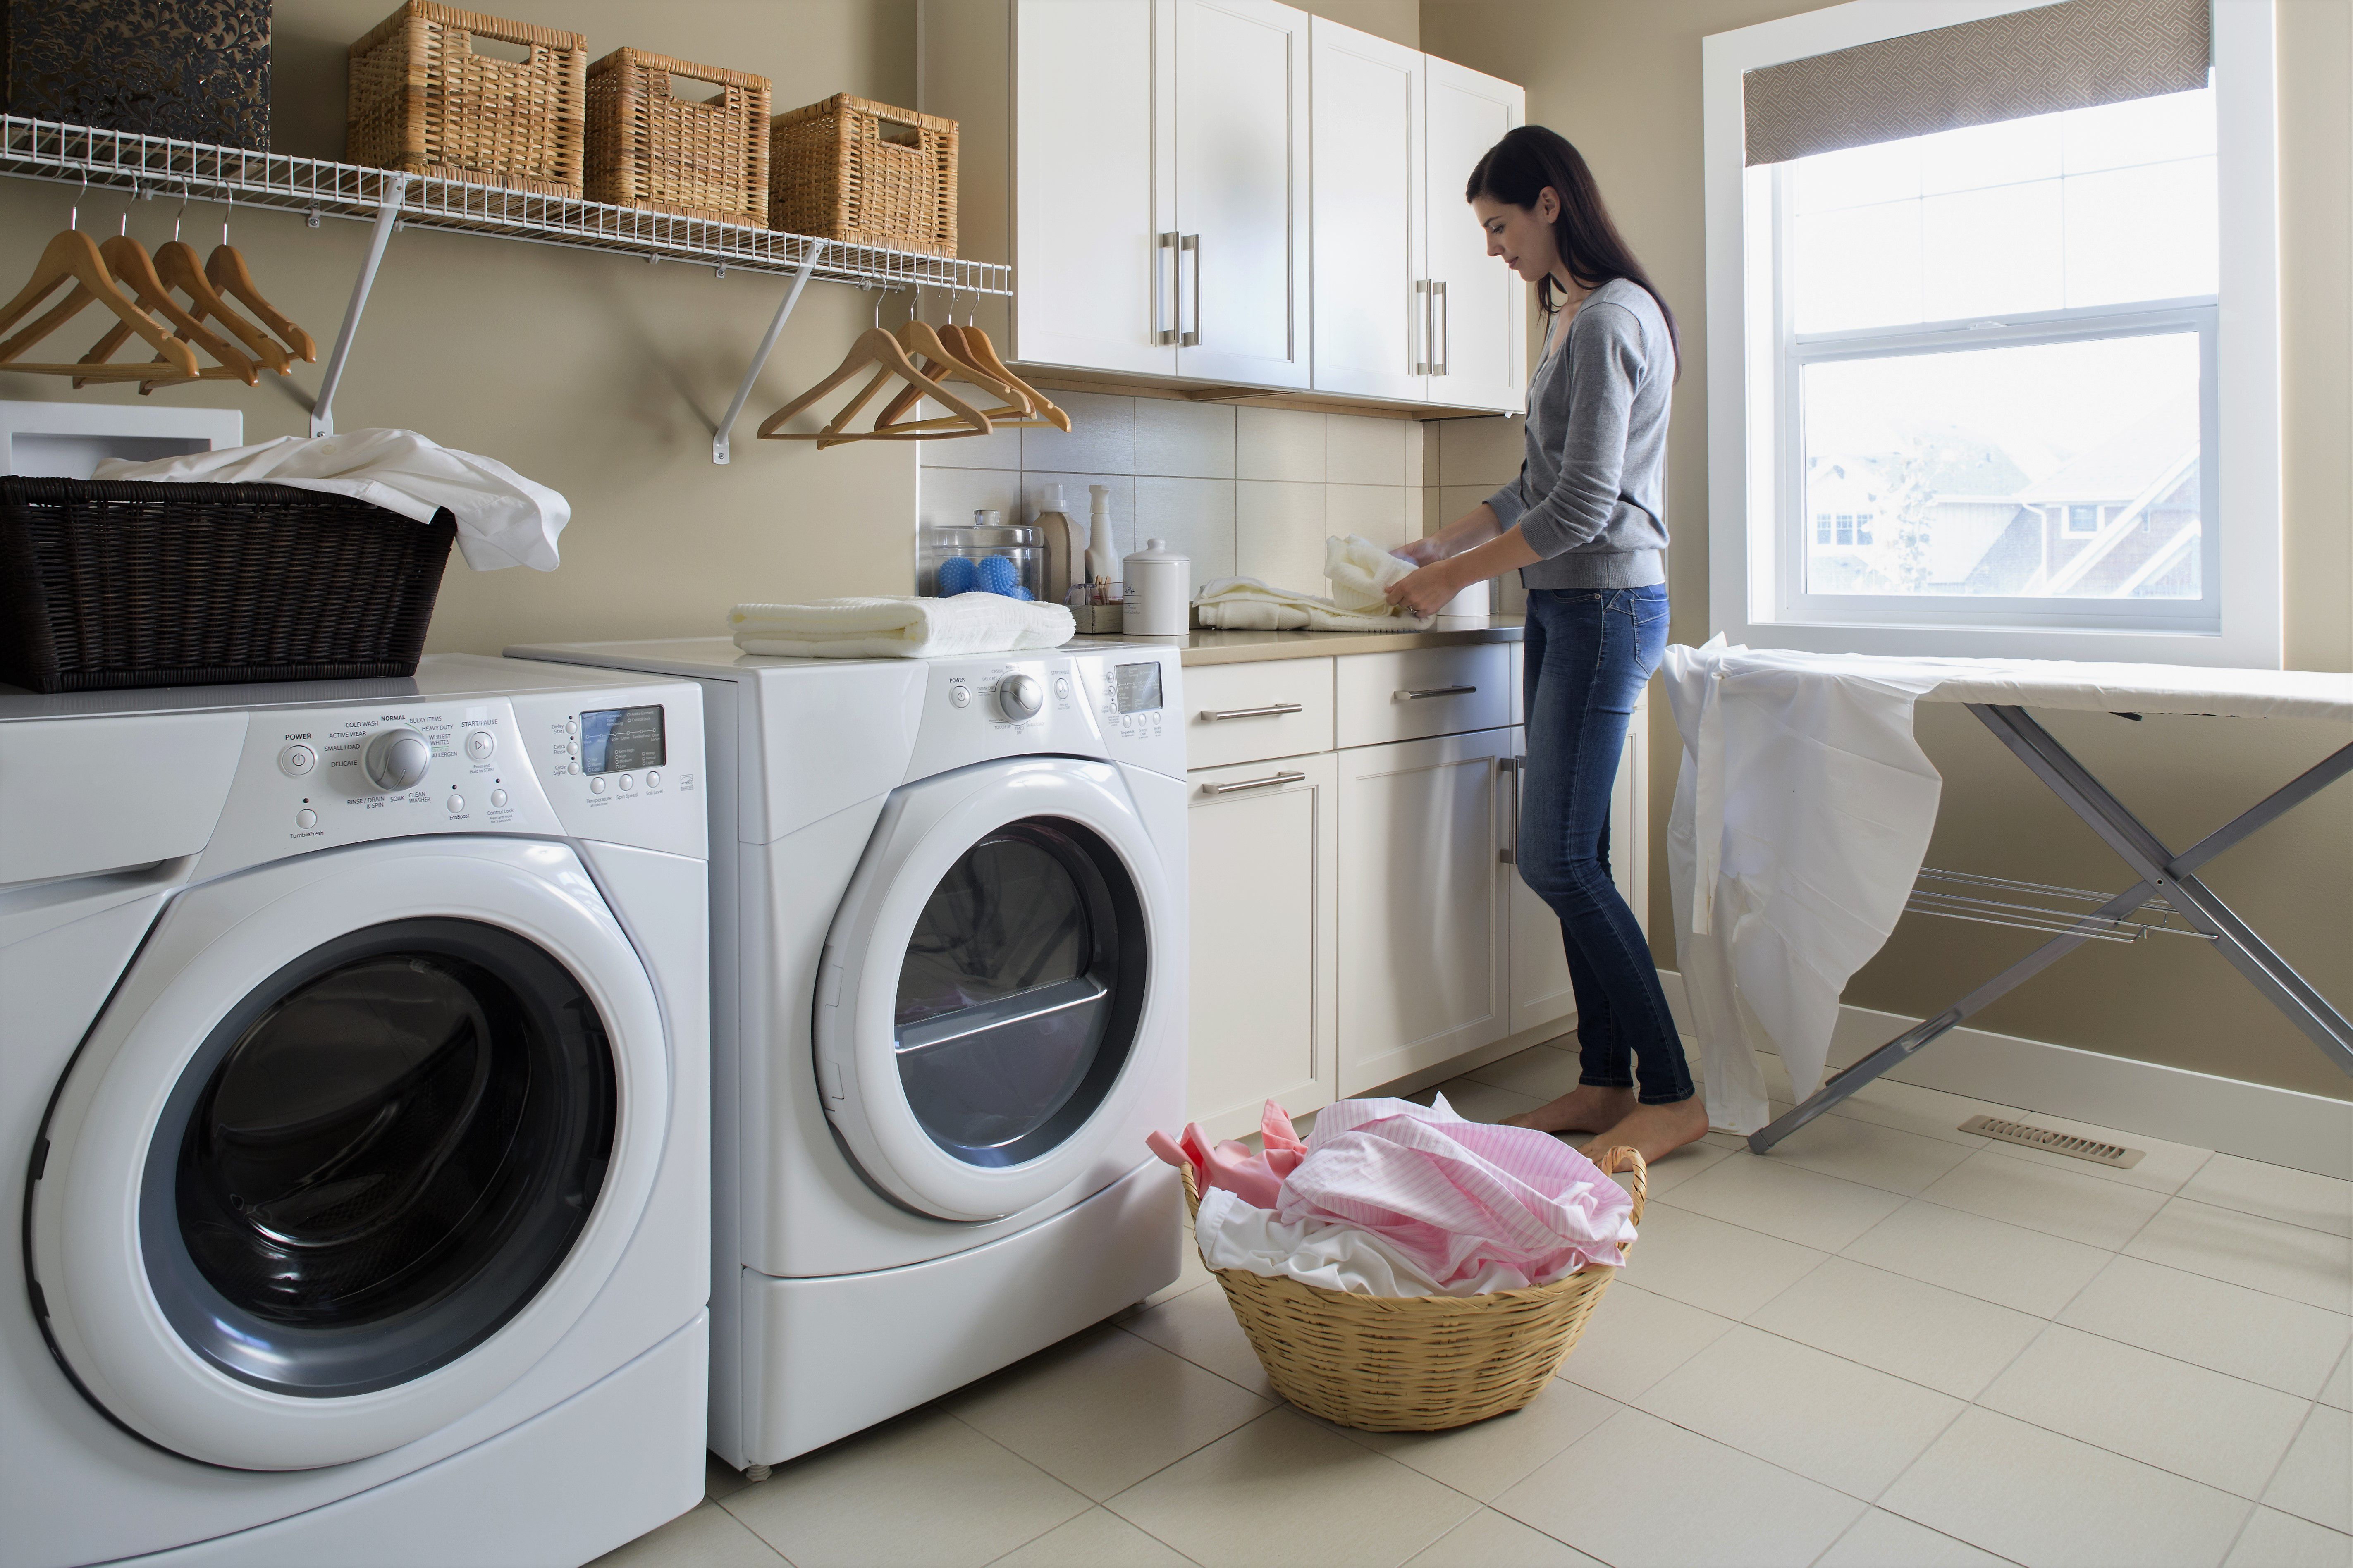 Lg Washer dryer Combo Service Manual Kenmore Model 417 Washer Manual